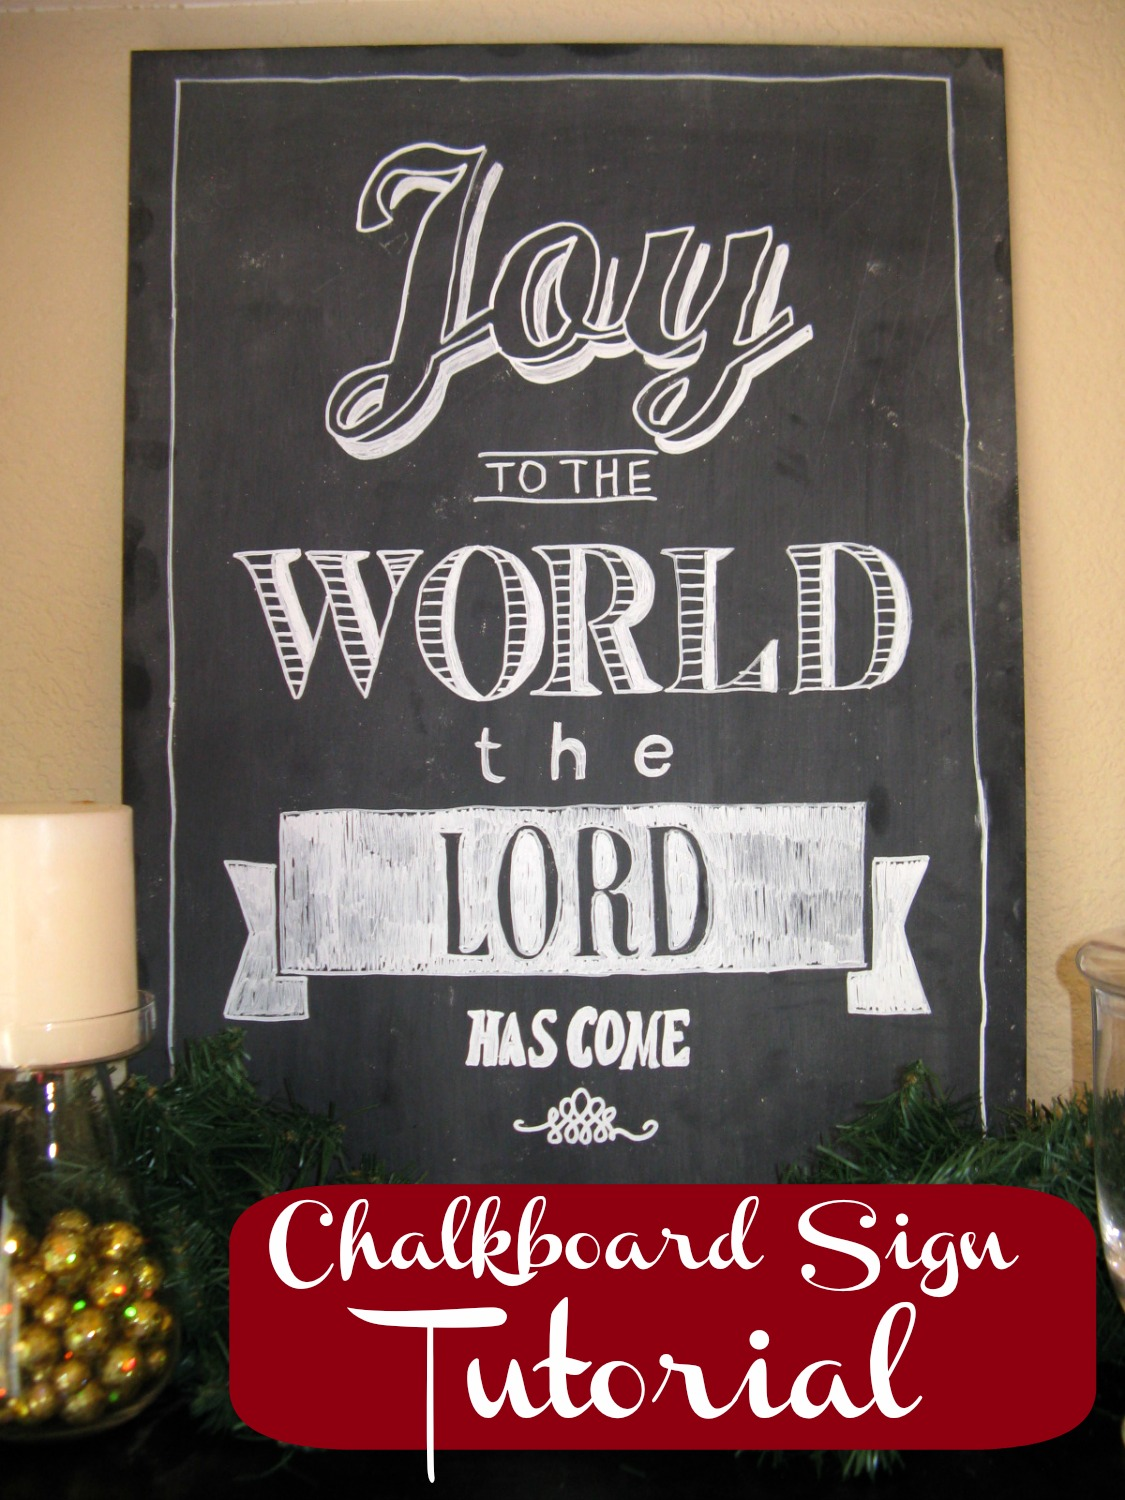 diy chalkboard signs tutorial inspiration for moms - Chalkboard Designs Ideas